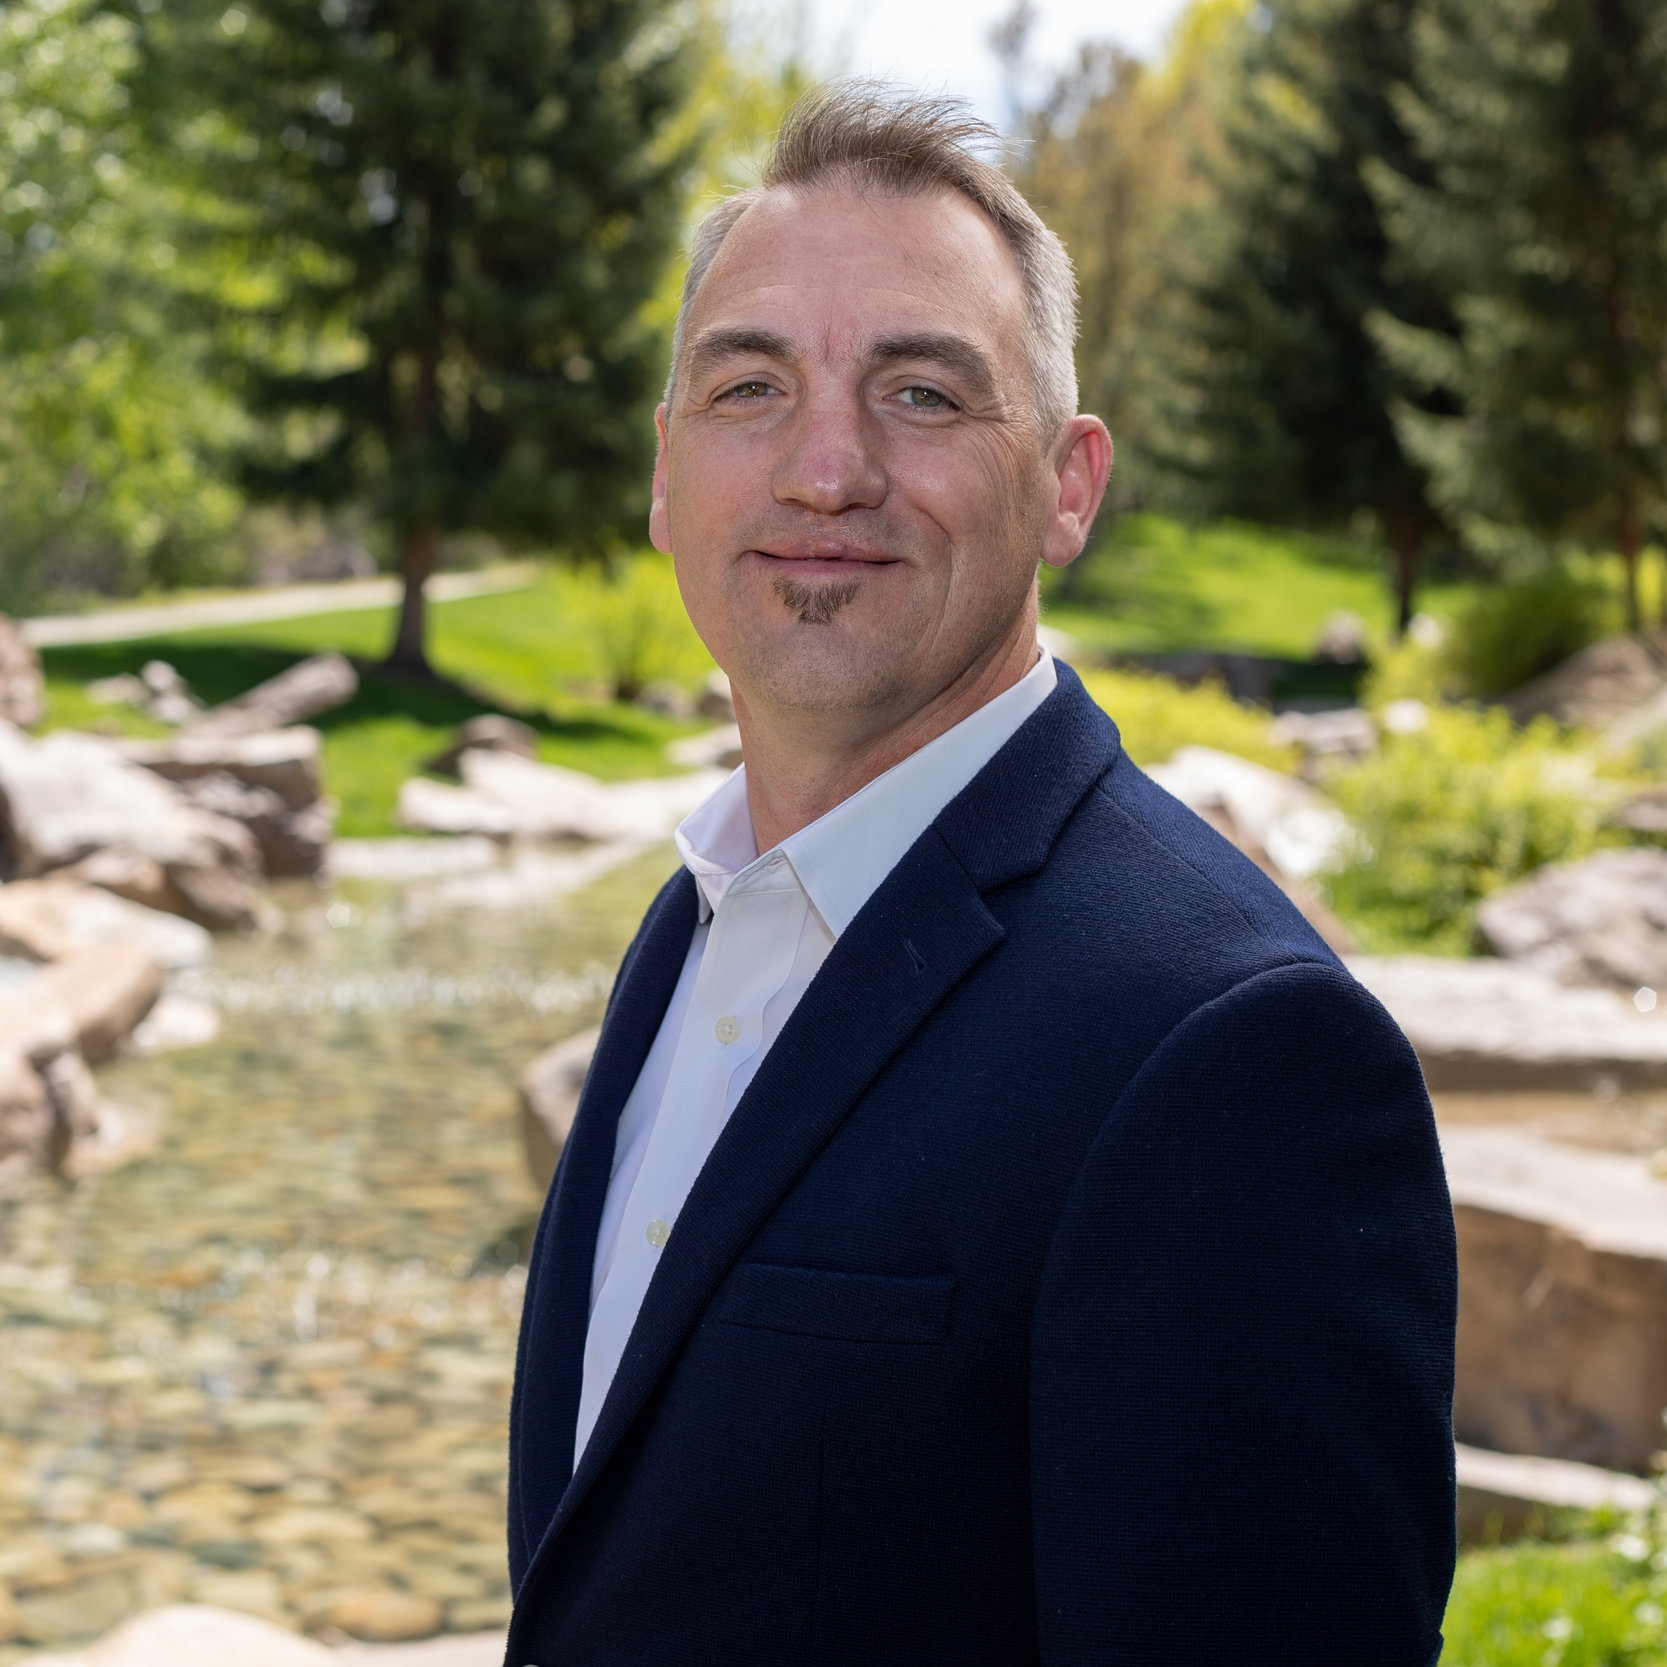 Chad A. Rohr    REALTOR® with Front Porch Properties   Chad Rohr is a retired U. S. Navy Chief Petty Officer with vast experience in sales, community outreach, and talent acquisition. Chad focuses his efforts on building strong relationships within the community through positive engagement, volunteering, and shared purpose. Chad is a 2017 Team Red, White, and Blue Eagle Leader Fellow. As a volunteer leader in Mission43 and as an outdoor advocate, he hosts running, mountain biking and hiking events throughout Idaho. Chad holds a Bachelor of Arts in Organizational Management from Ashford University.